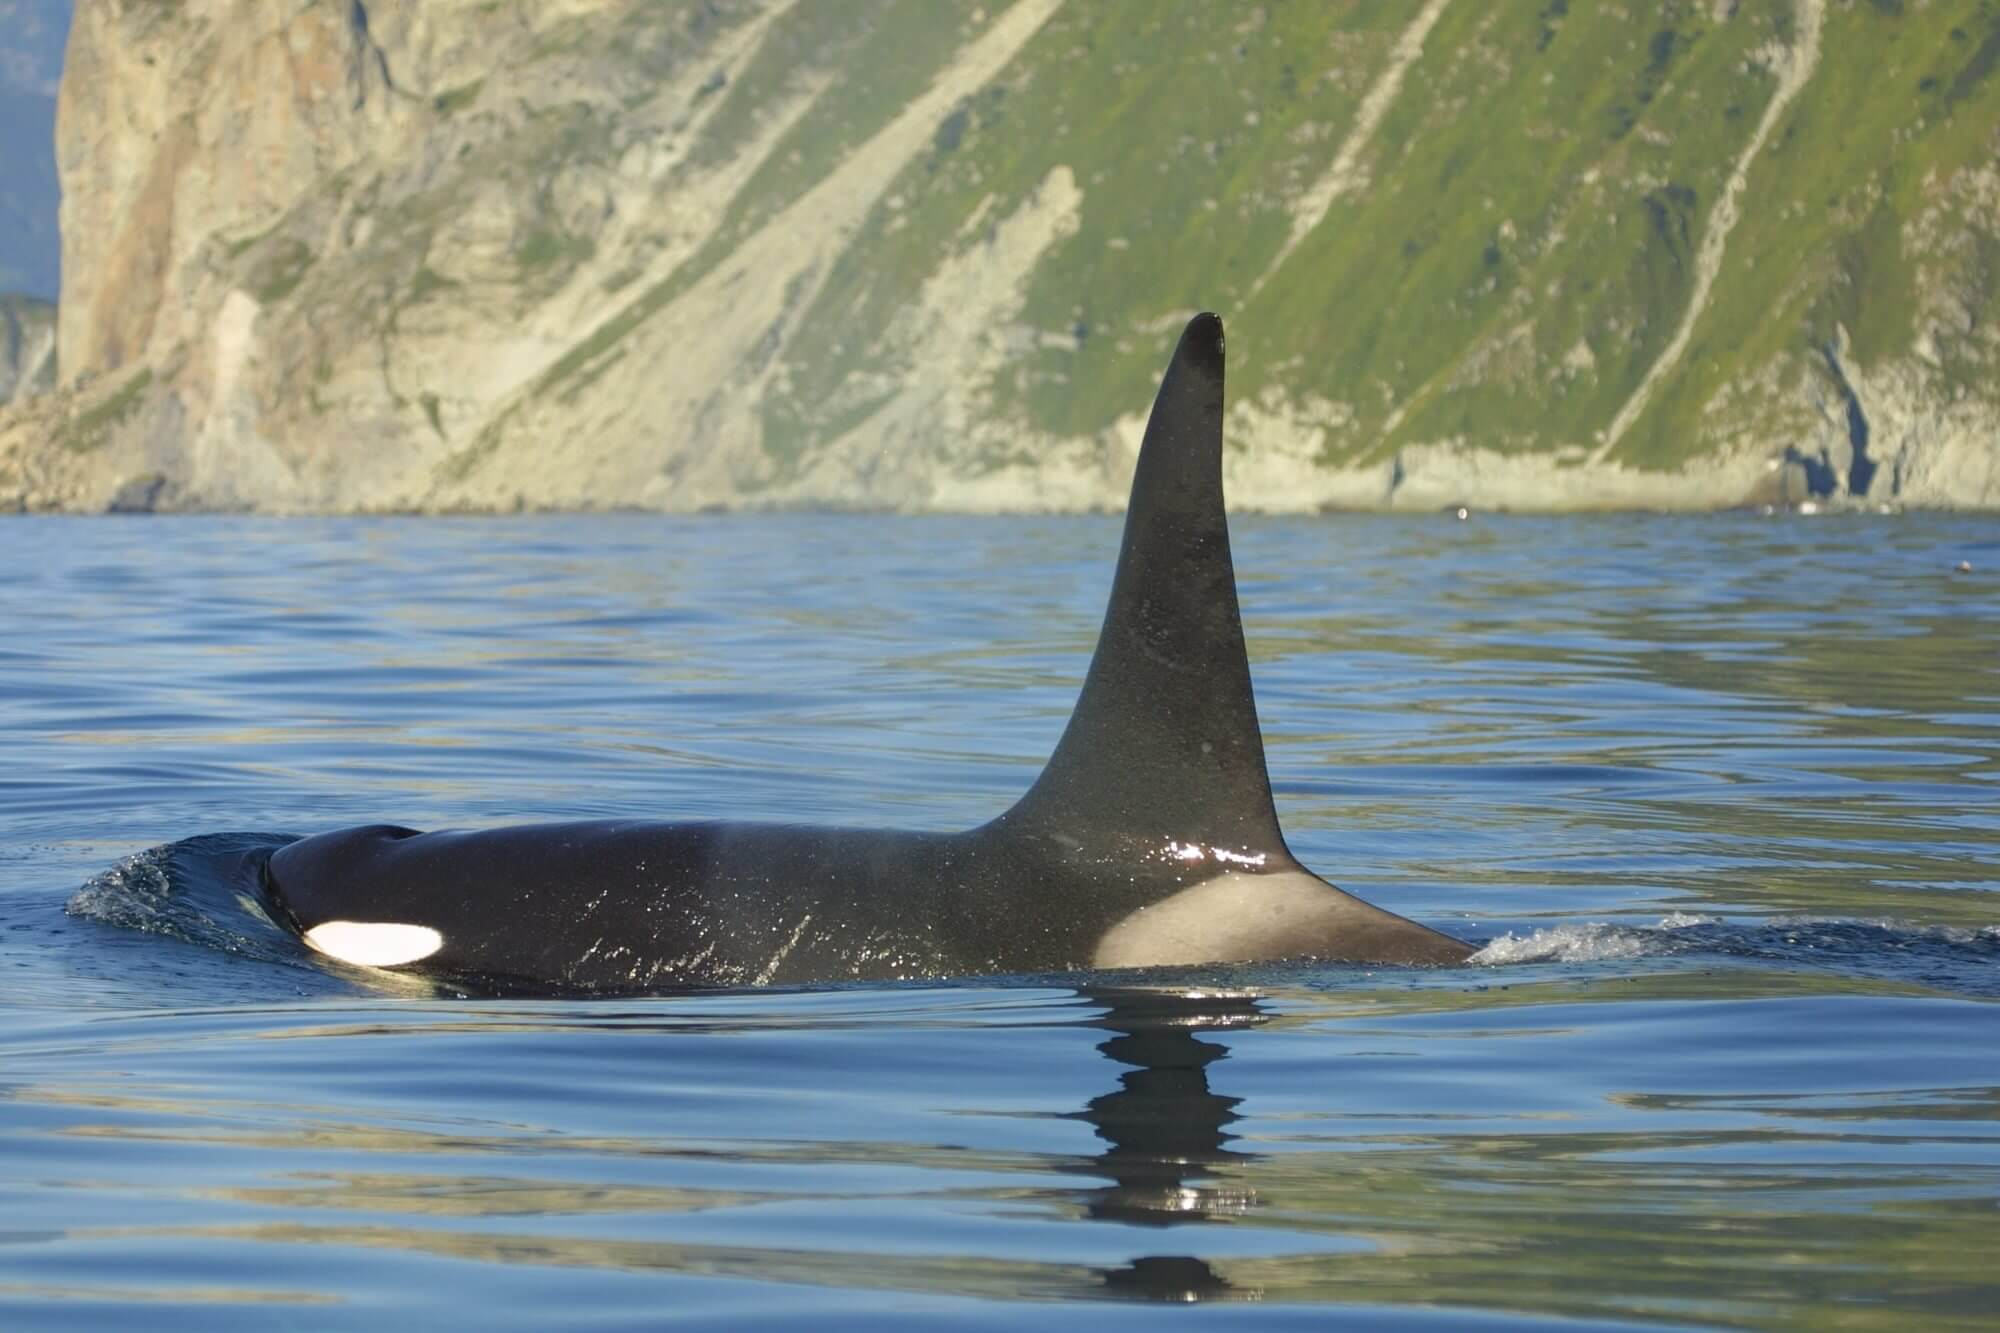 Facts about orcas (killer whales) - Whale & Dolphin